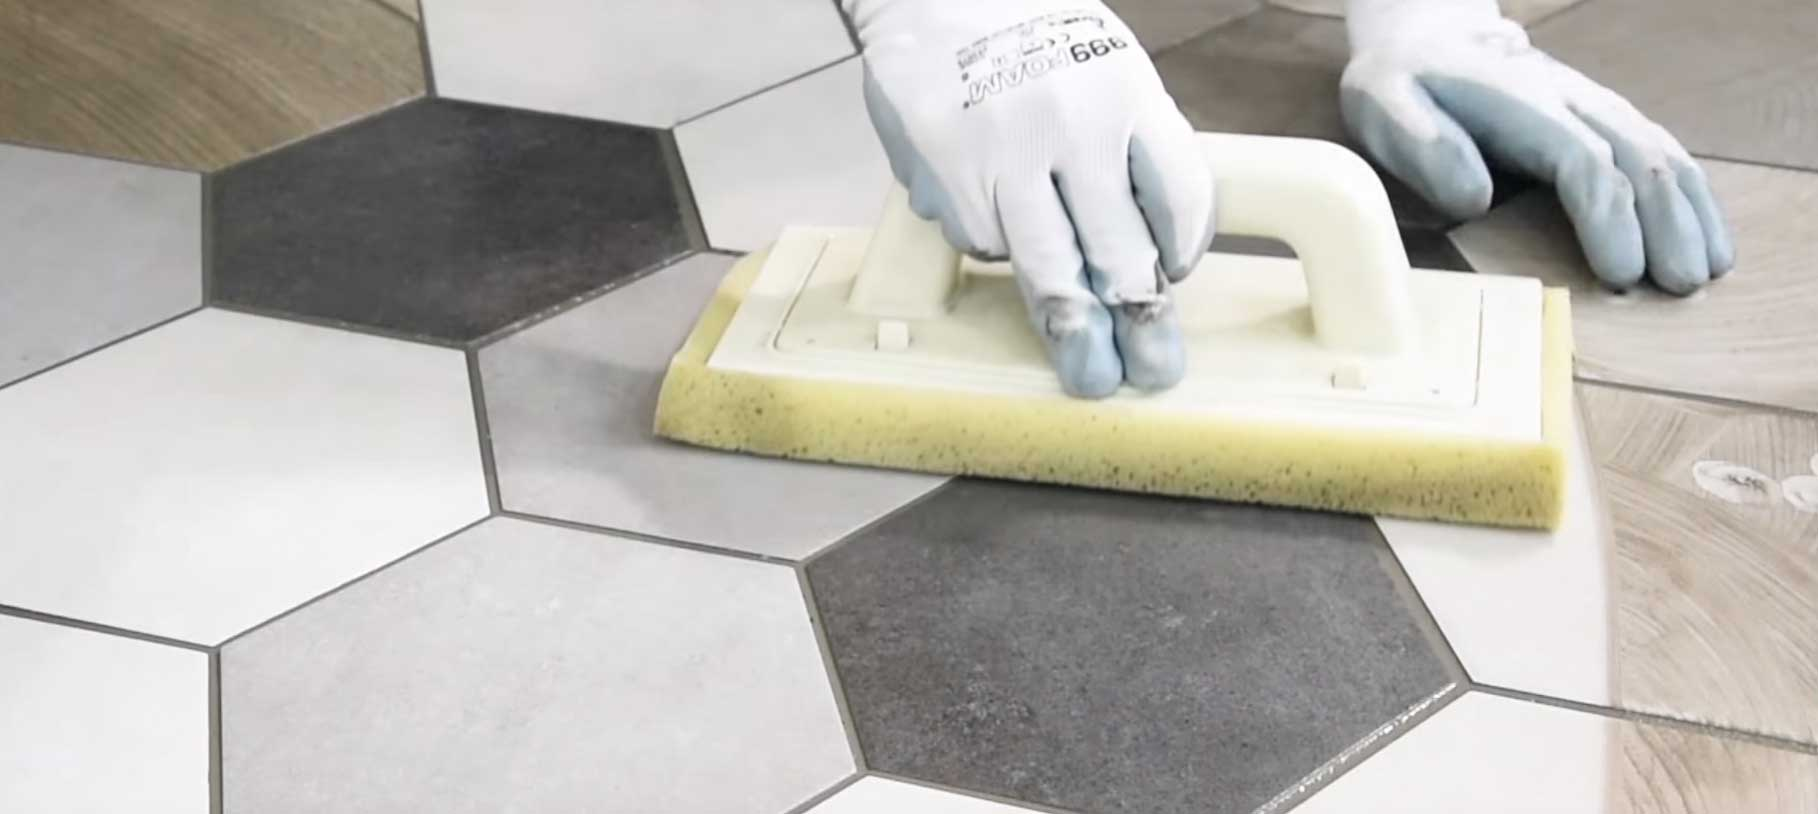 Porcelain stoneware: how best to clean it?